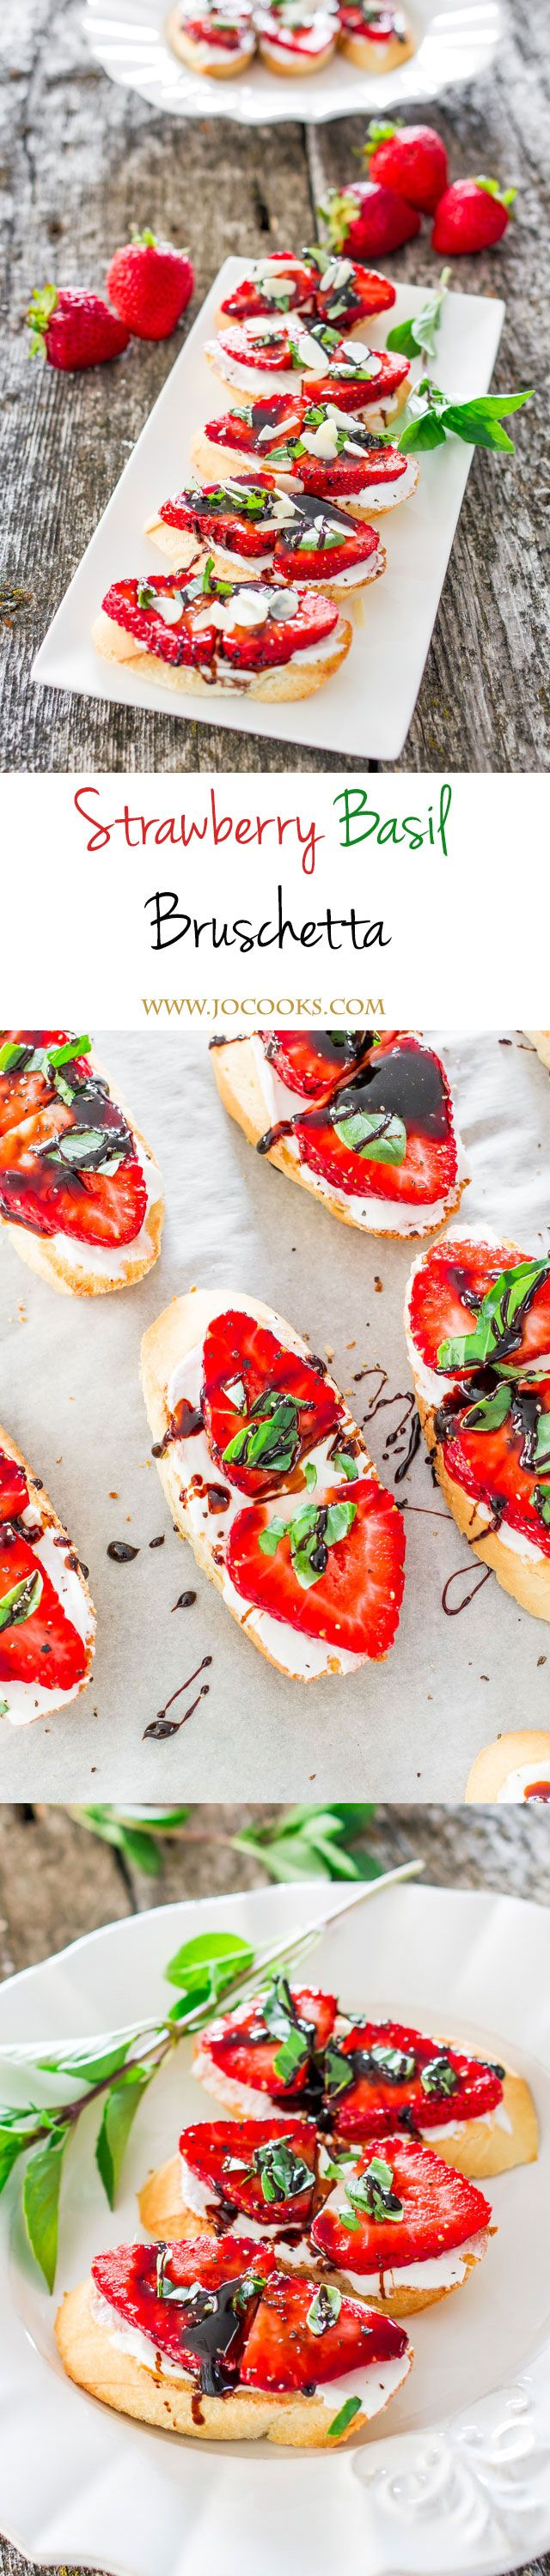 Strawberry Basil Bruschetta -Greek yogurt, fresh strawberries, basil and balsamic reduction over a French baguette gives you perfection.